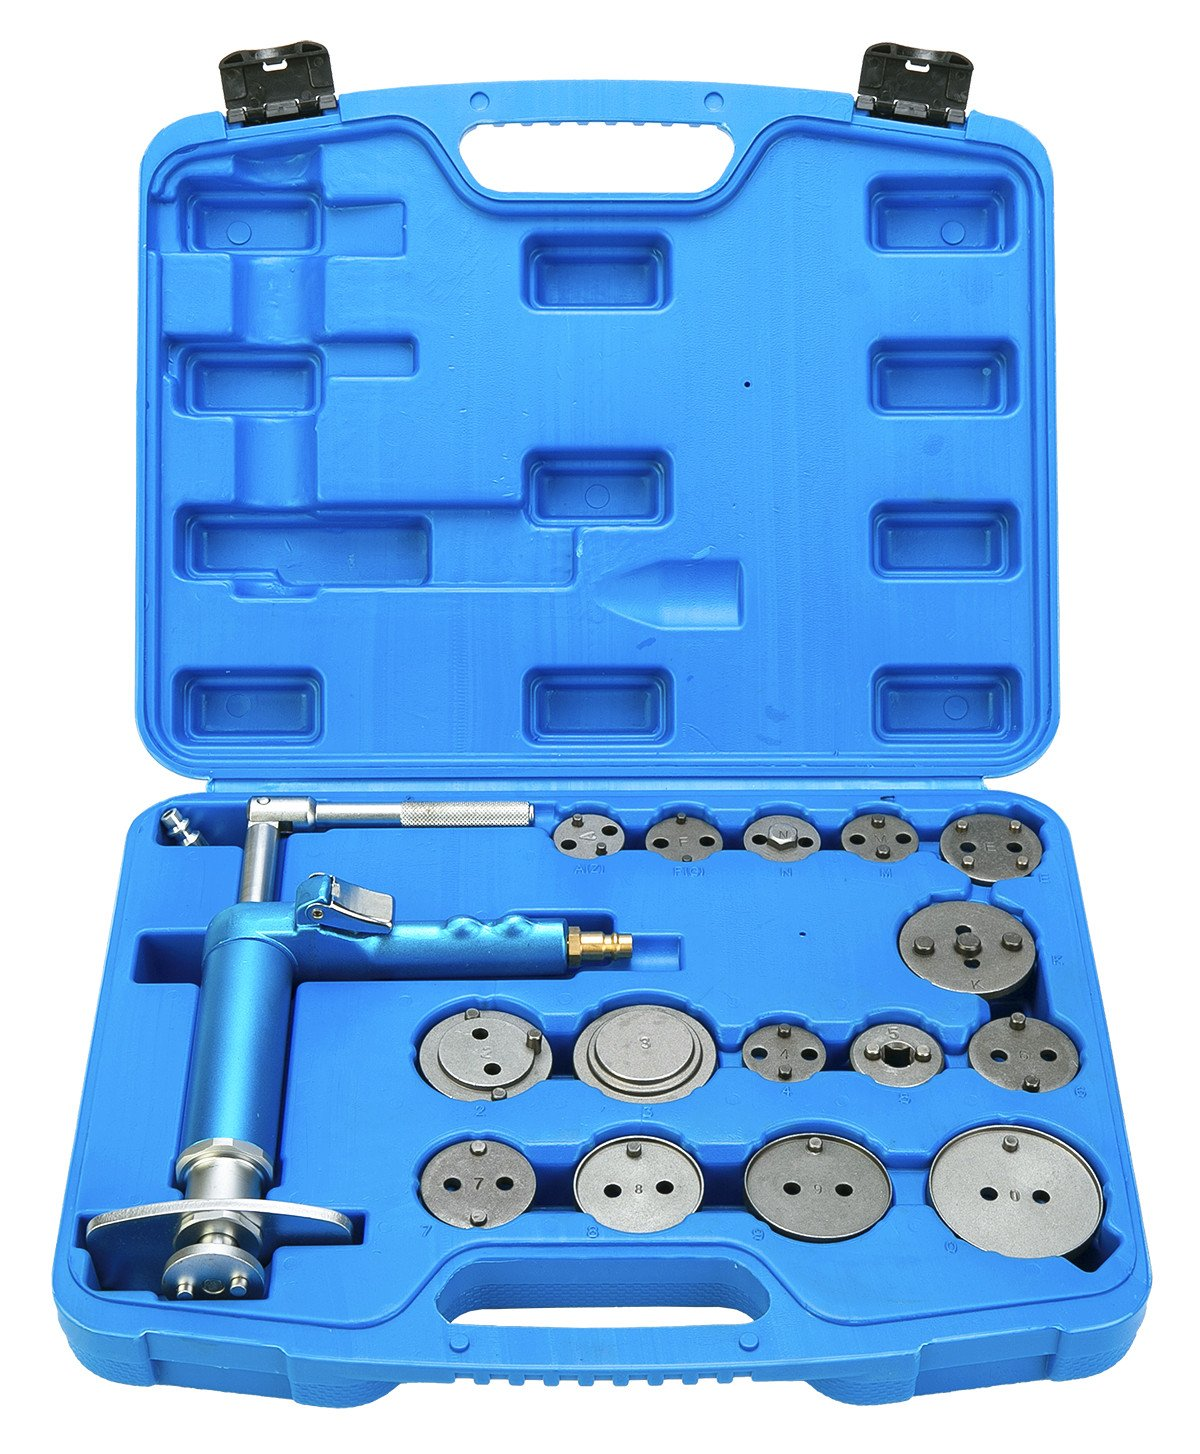 FreeTec 16pcs Pneumatic Disc Brake Caliper Piston Air Brake Caliper Piston Compressor Master Tool Kit freebirdtrading